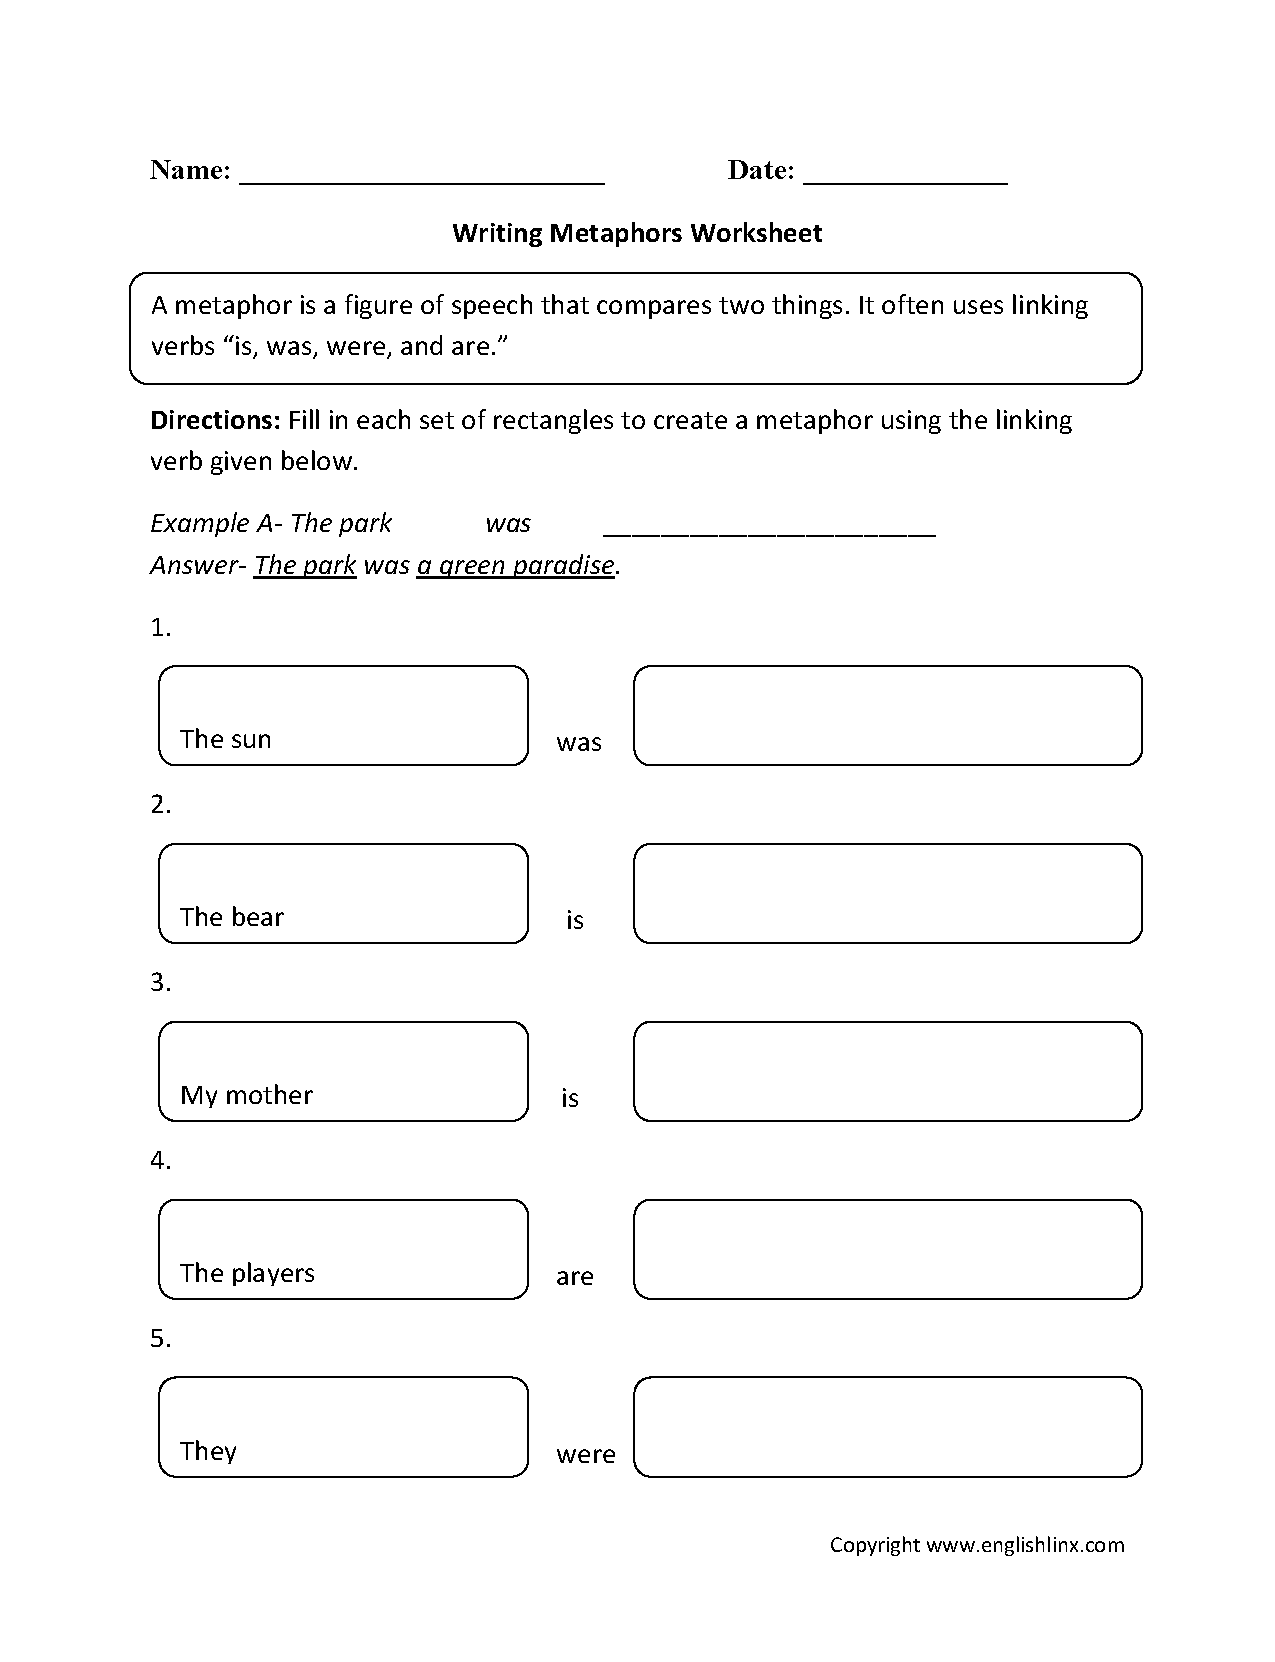 Aldiablosus  Pretty Englishlinxcom  Metaphors Worksheets With Licious Worksheet With Charming Free Printable Kindergarten Sight Words Worksheets Also Adding Negative Numbers Worksheets In Addition Beginning Blend Worksheets And Alphabet Symmetry Worksheet As Well As Cognitive Therapy Worksheet Additionally Triple Digit Subtraction Worksheets From Englishlinxcom With Aldiablosus  Licious Englishlinxcom  Metaphors Worksheets With Charming Worksheet And Pretty Free Printable Kindergarten Sight Words Worksheets Also Adding Negative Numbers Worksheets In Addition Beginning Blend Worksheets From Englishlinxcom